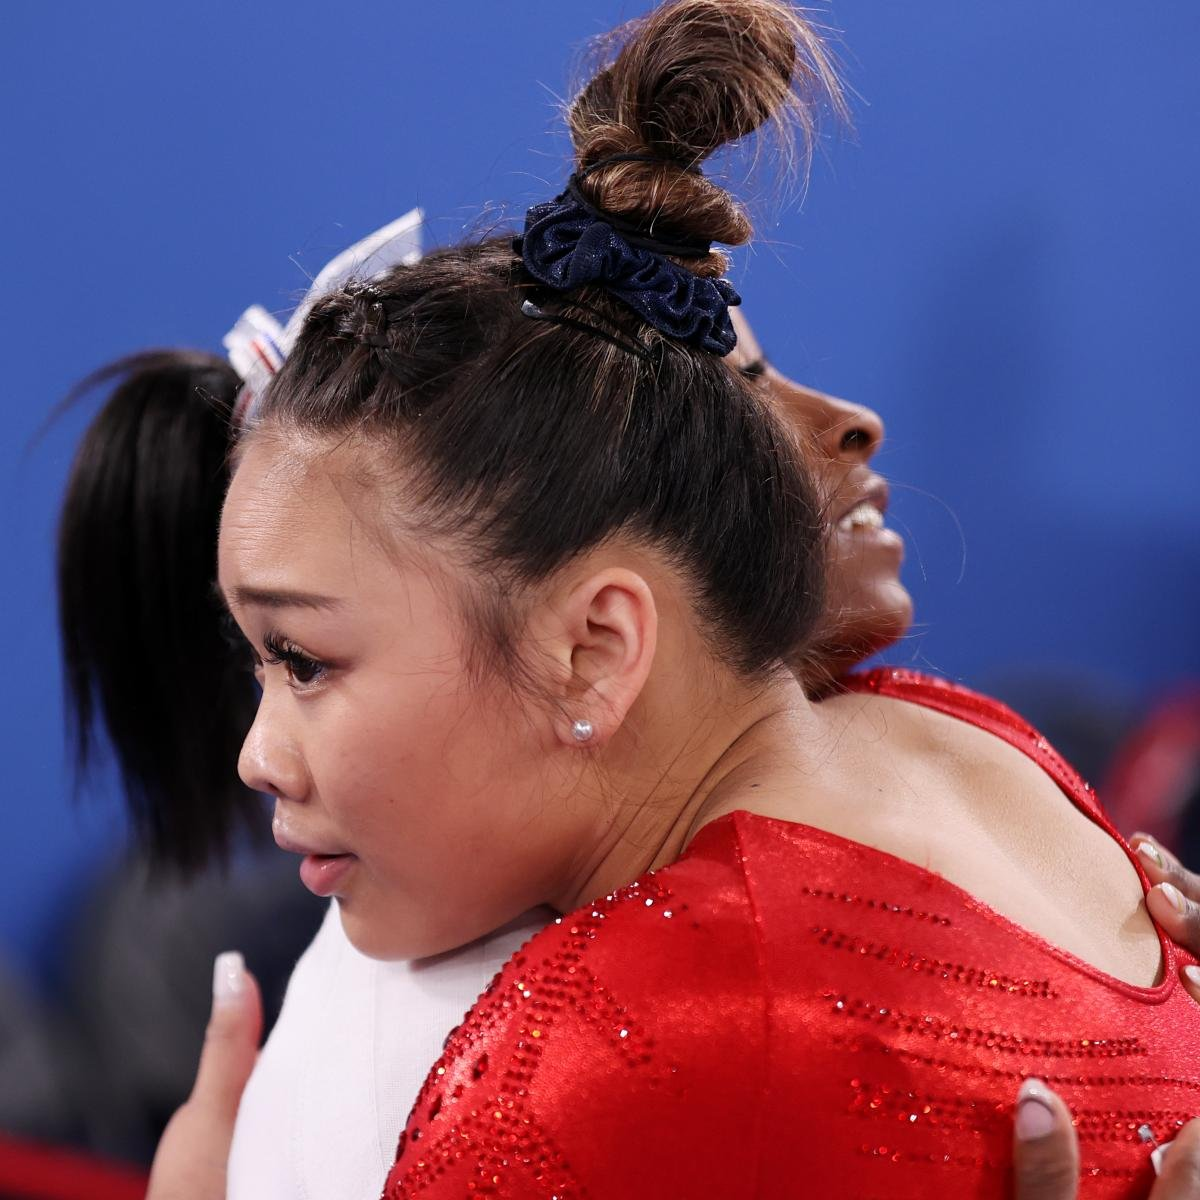 U.S. Gymnasts' Grit Without Biles Can't Hide Reality Check for Team's Future